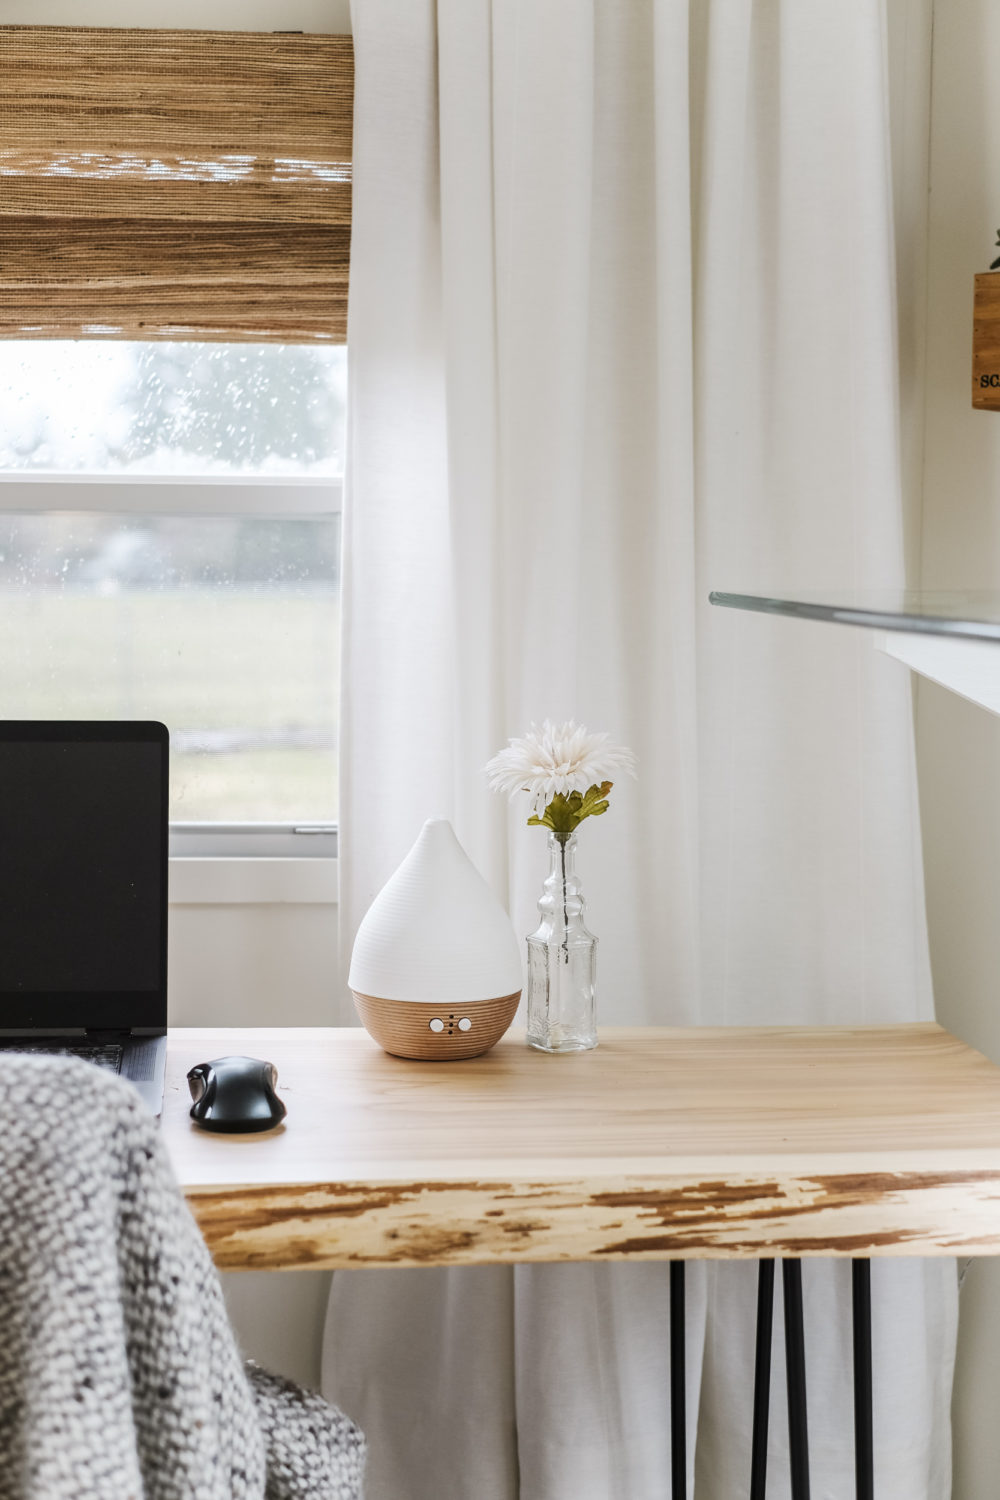 Modern oil diffuser and small vase on top of wood desk